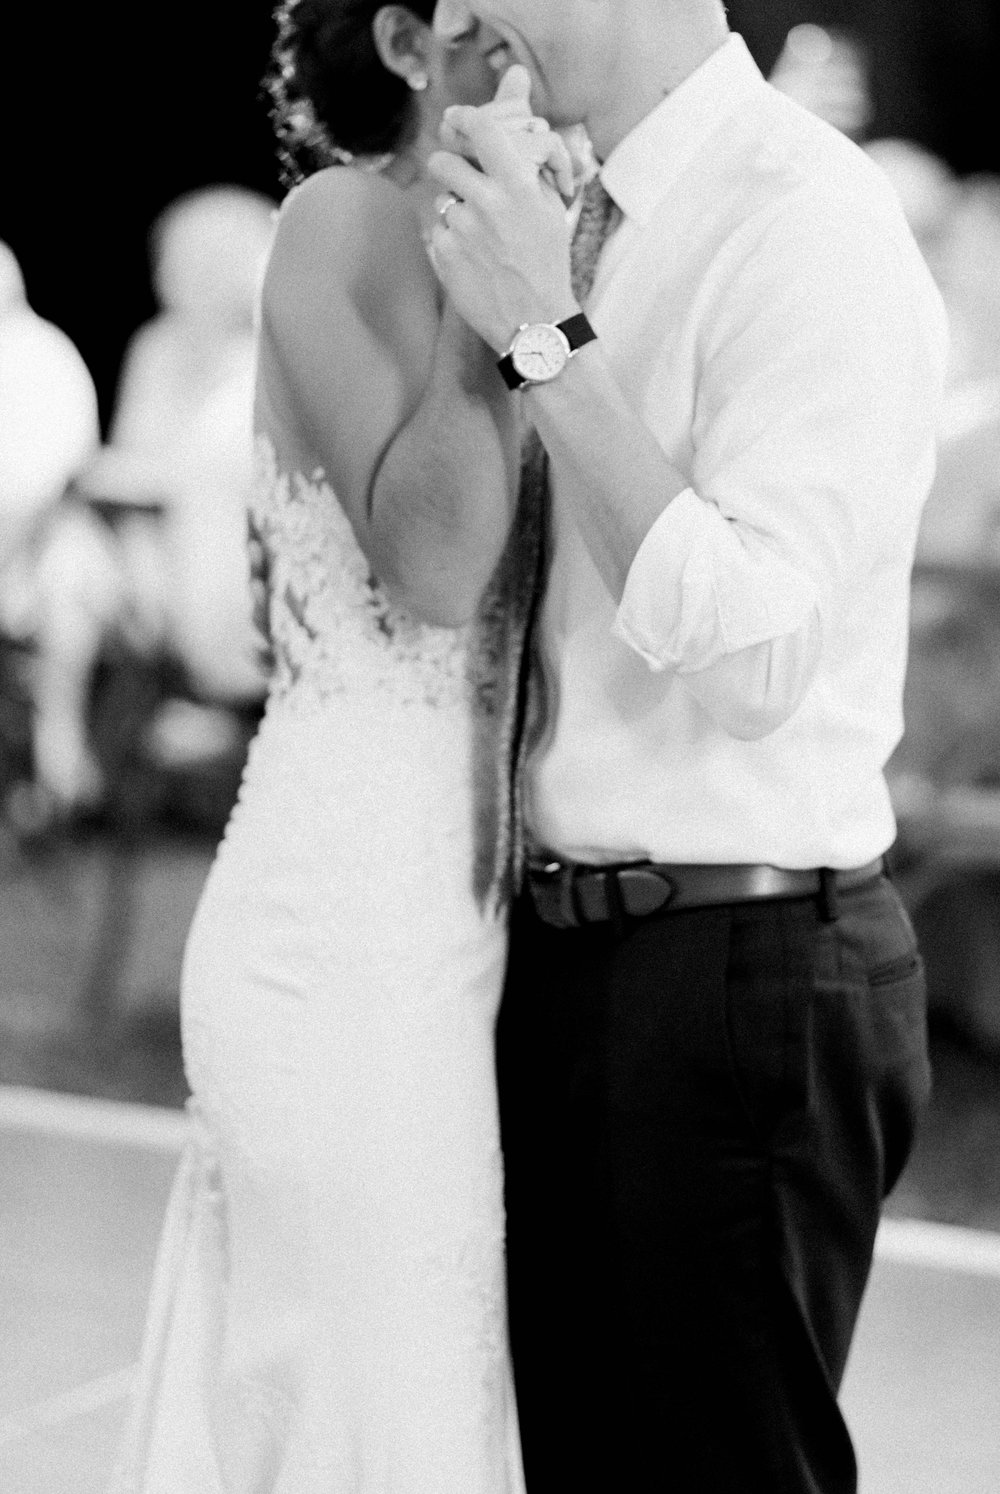 Williamsburgvawedding_backyardwedding_virginiaweddingphotographer_lynchburgweddingphotographer_PaulAliya 39.jpg